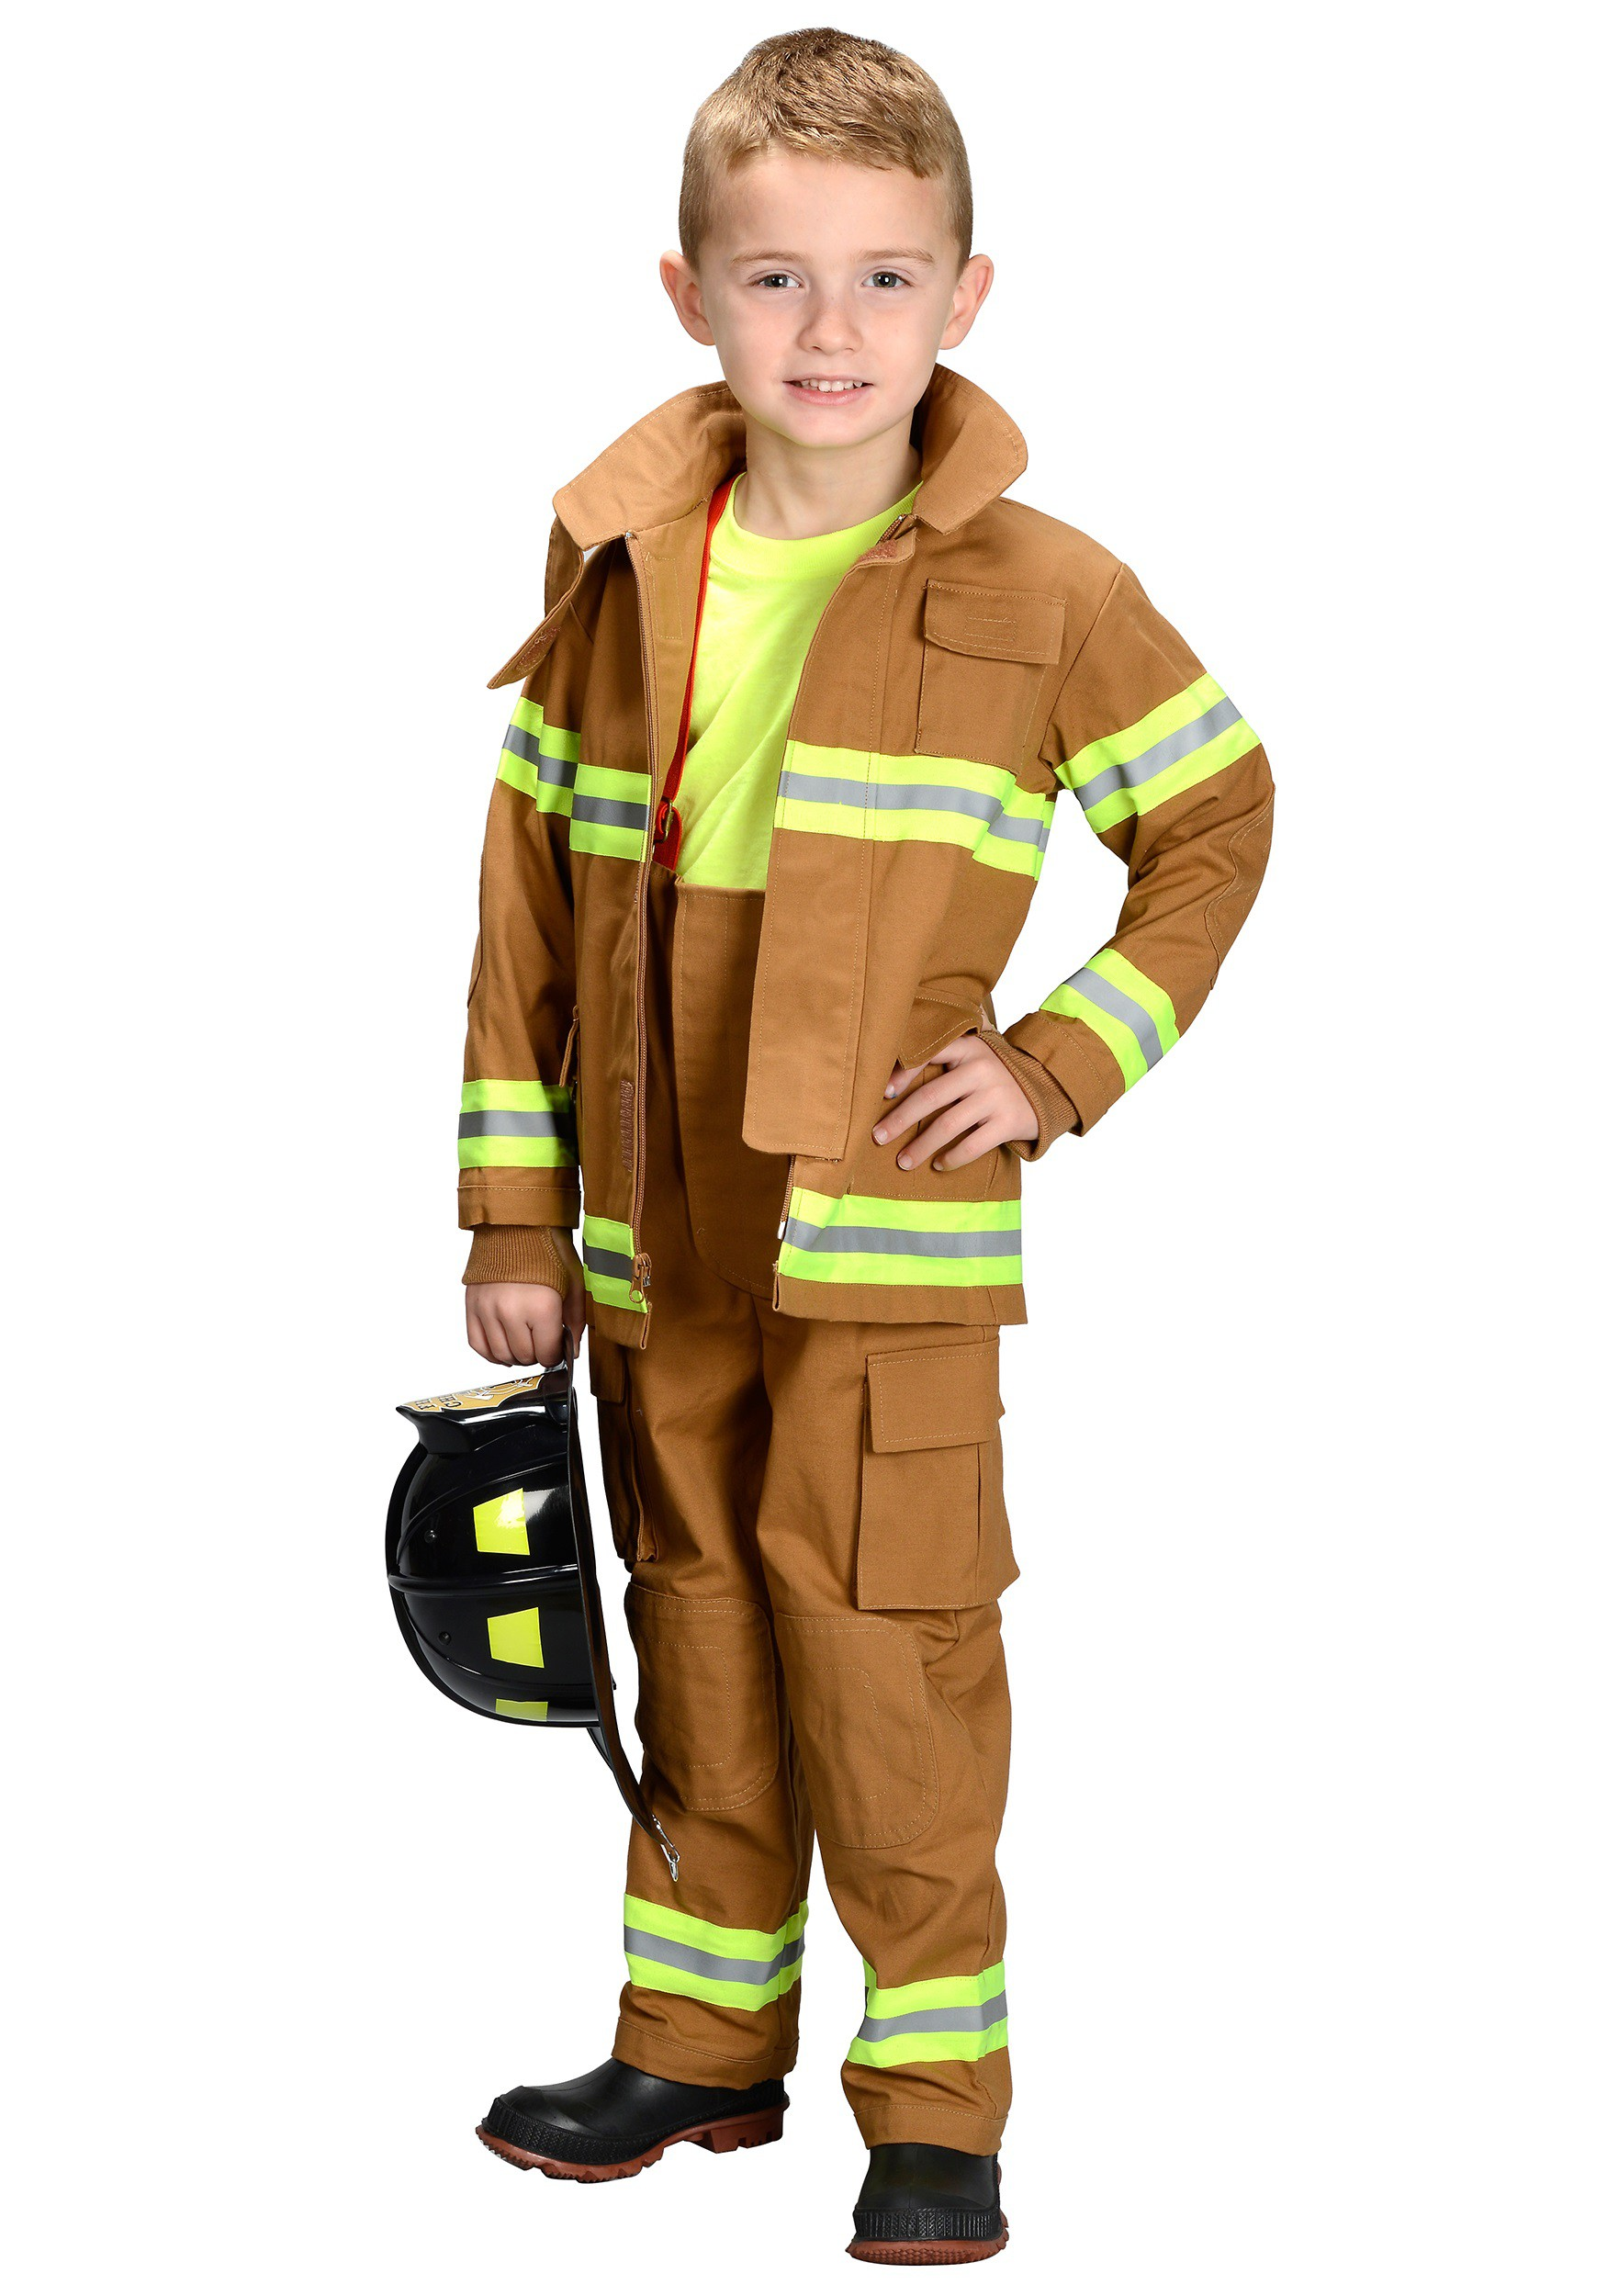 Kids Firefighter Costume by Aeromax